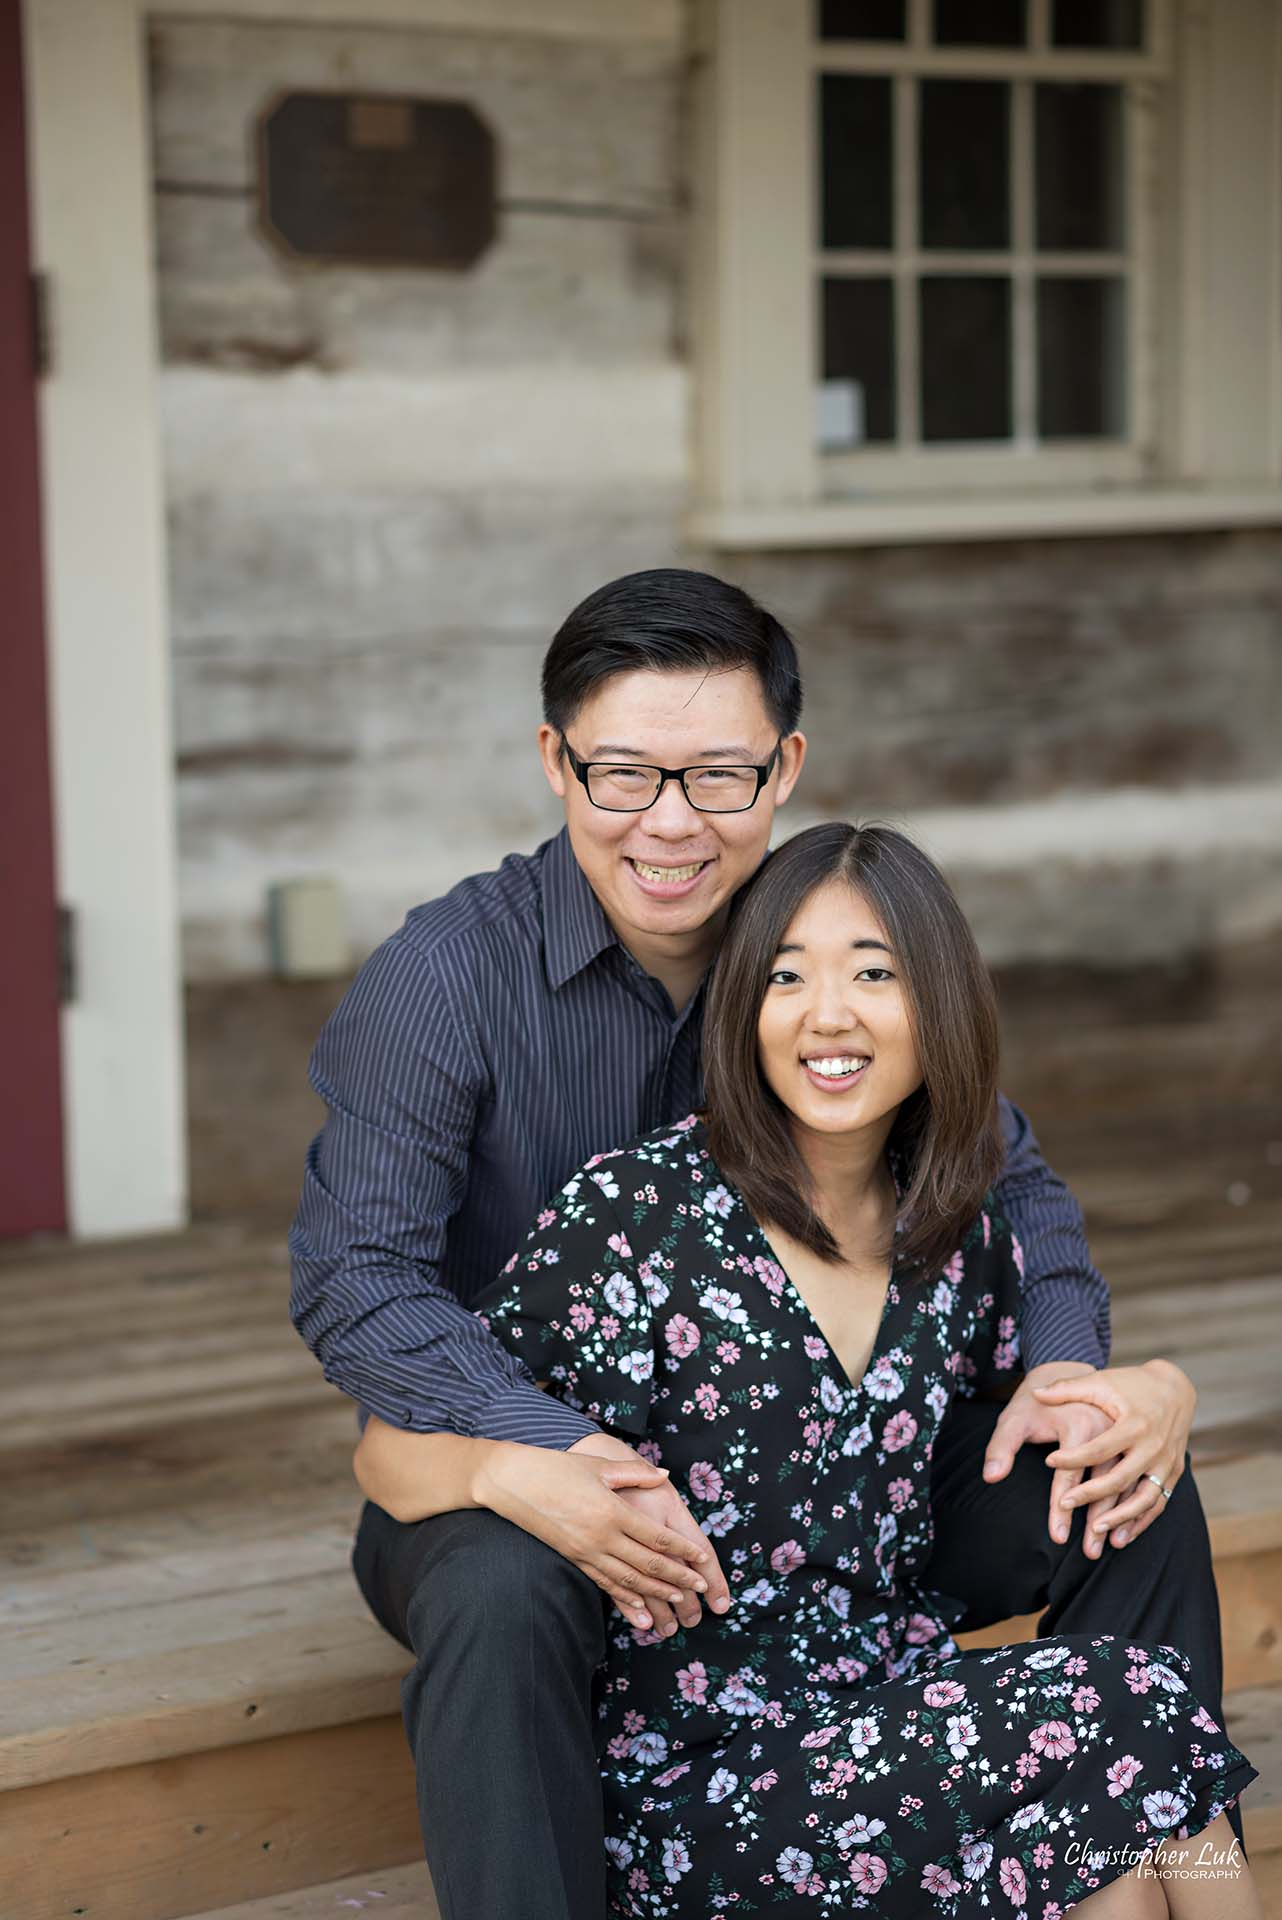 Christopher Luk Toronto Wedding Photographer - Richmond Hill Markham York Region Conservation Area Engagement PreWedding Chinese Korean - Natural Candid Photojournalistic Bride Groom Historic Estate Log Cabin House Steps Staircase Smile